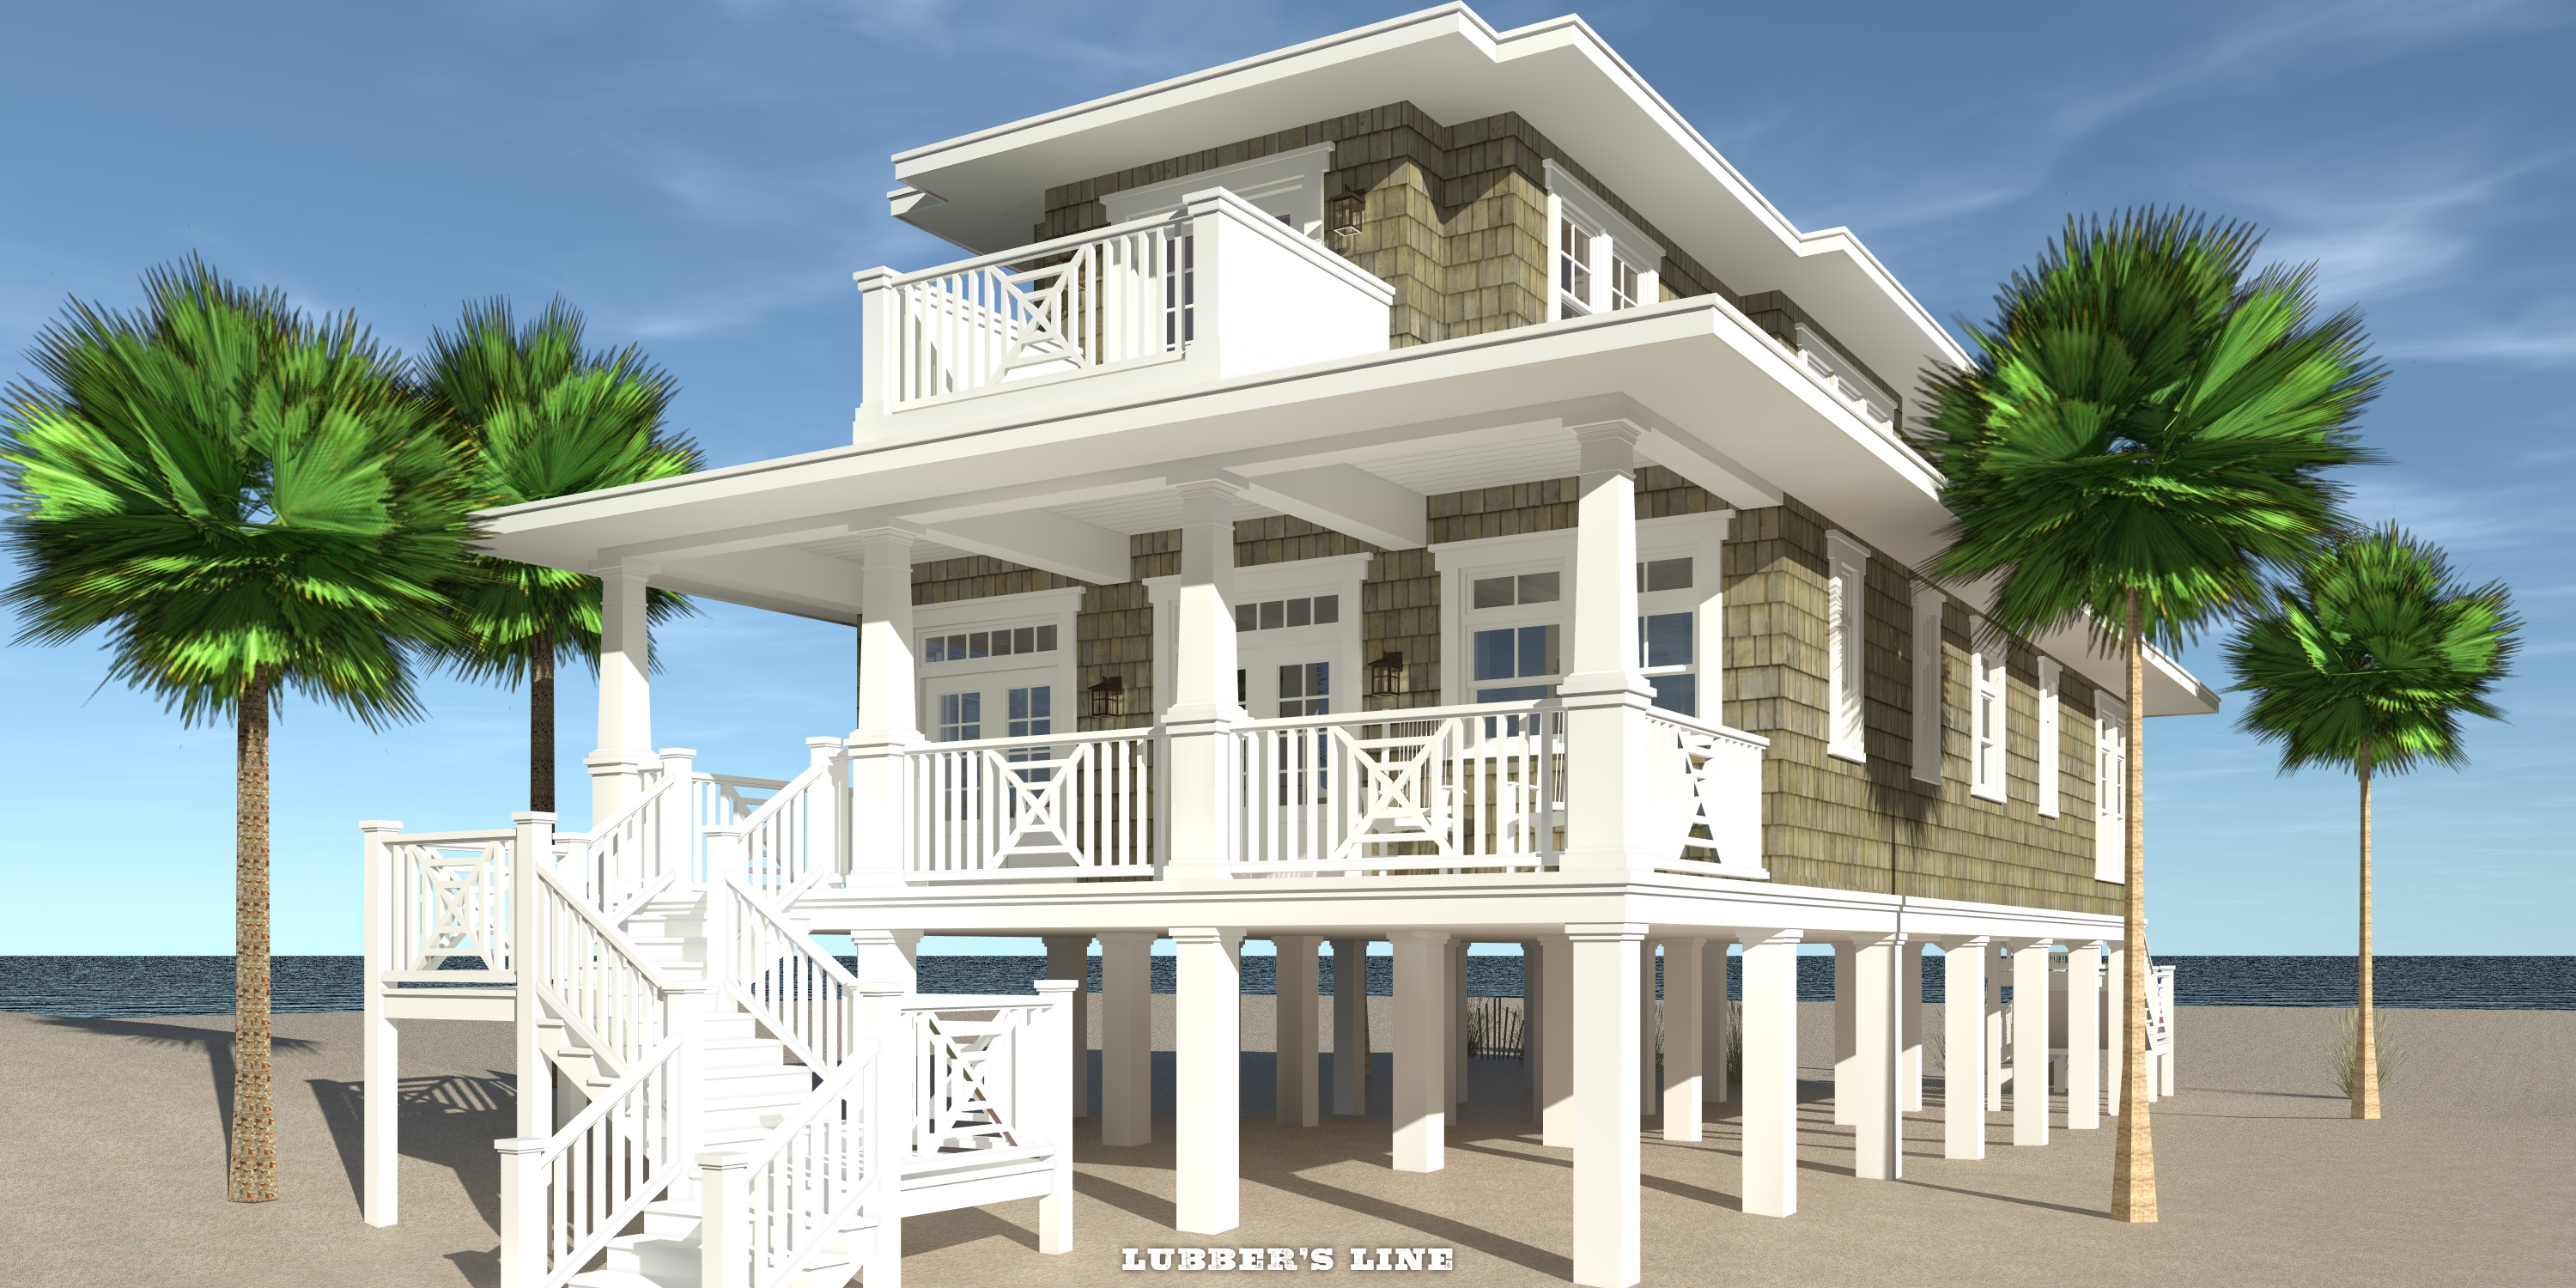 Rear View - Lubber's Line House Plan - Tyree House Plans